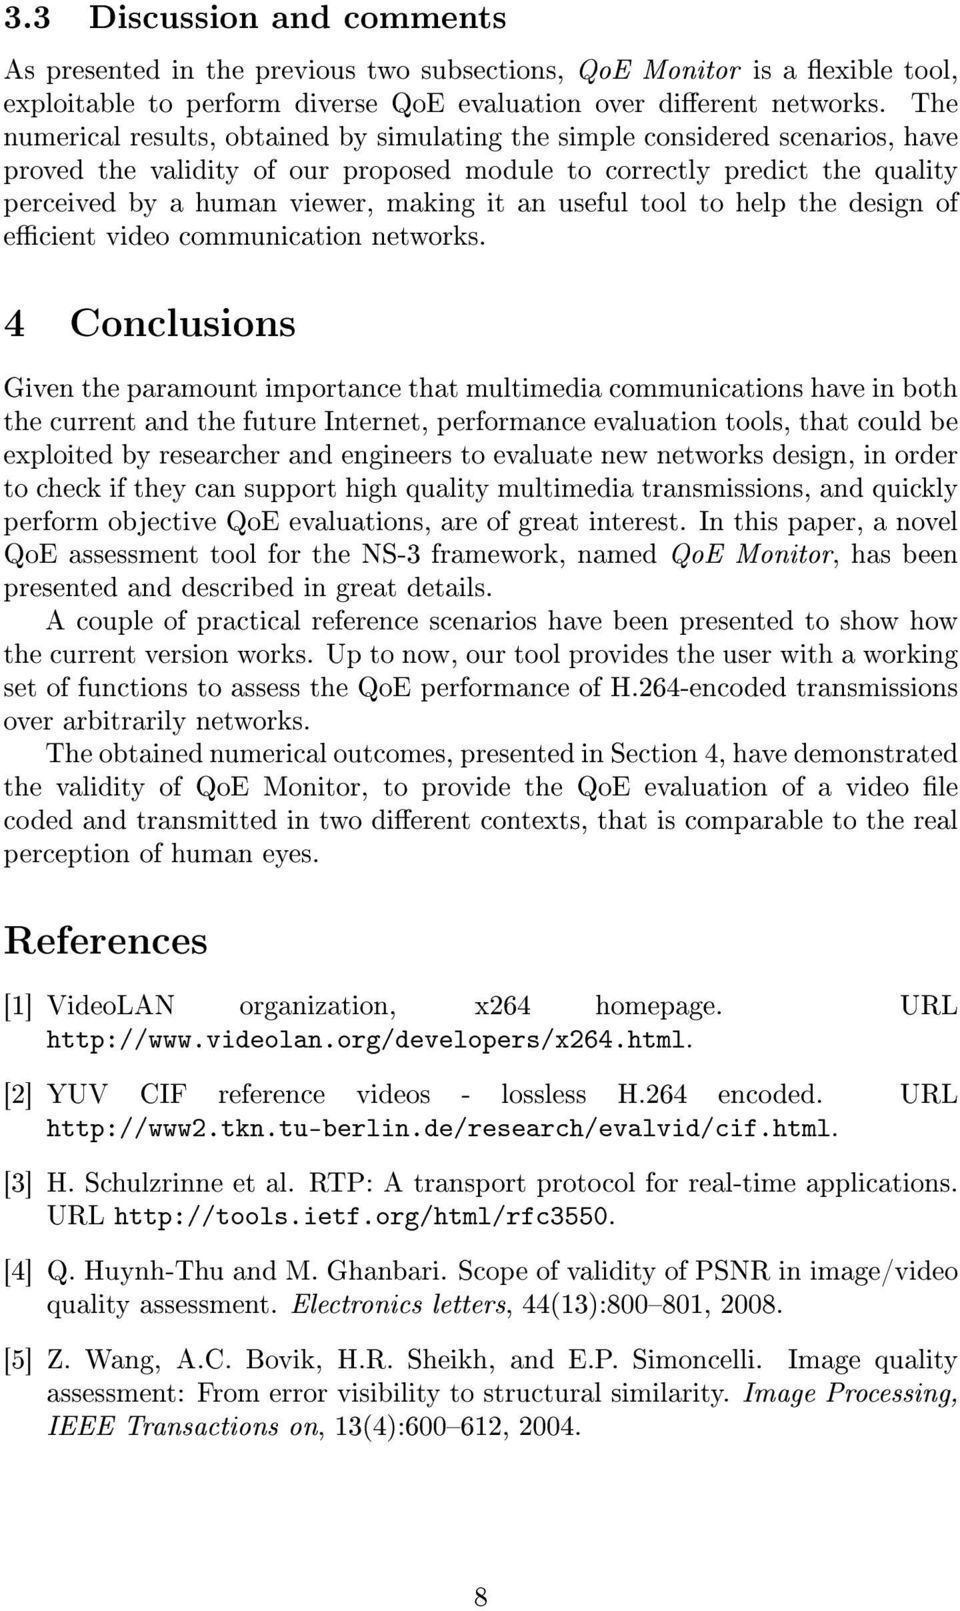 an useful tool to help the design of ecient video communication networks.